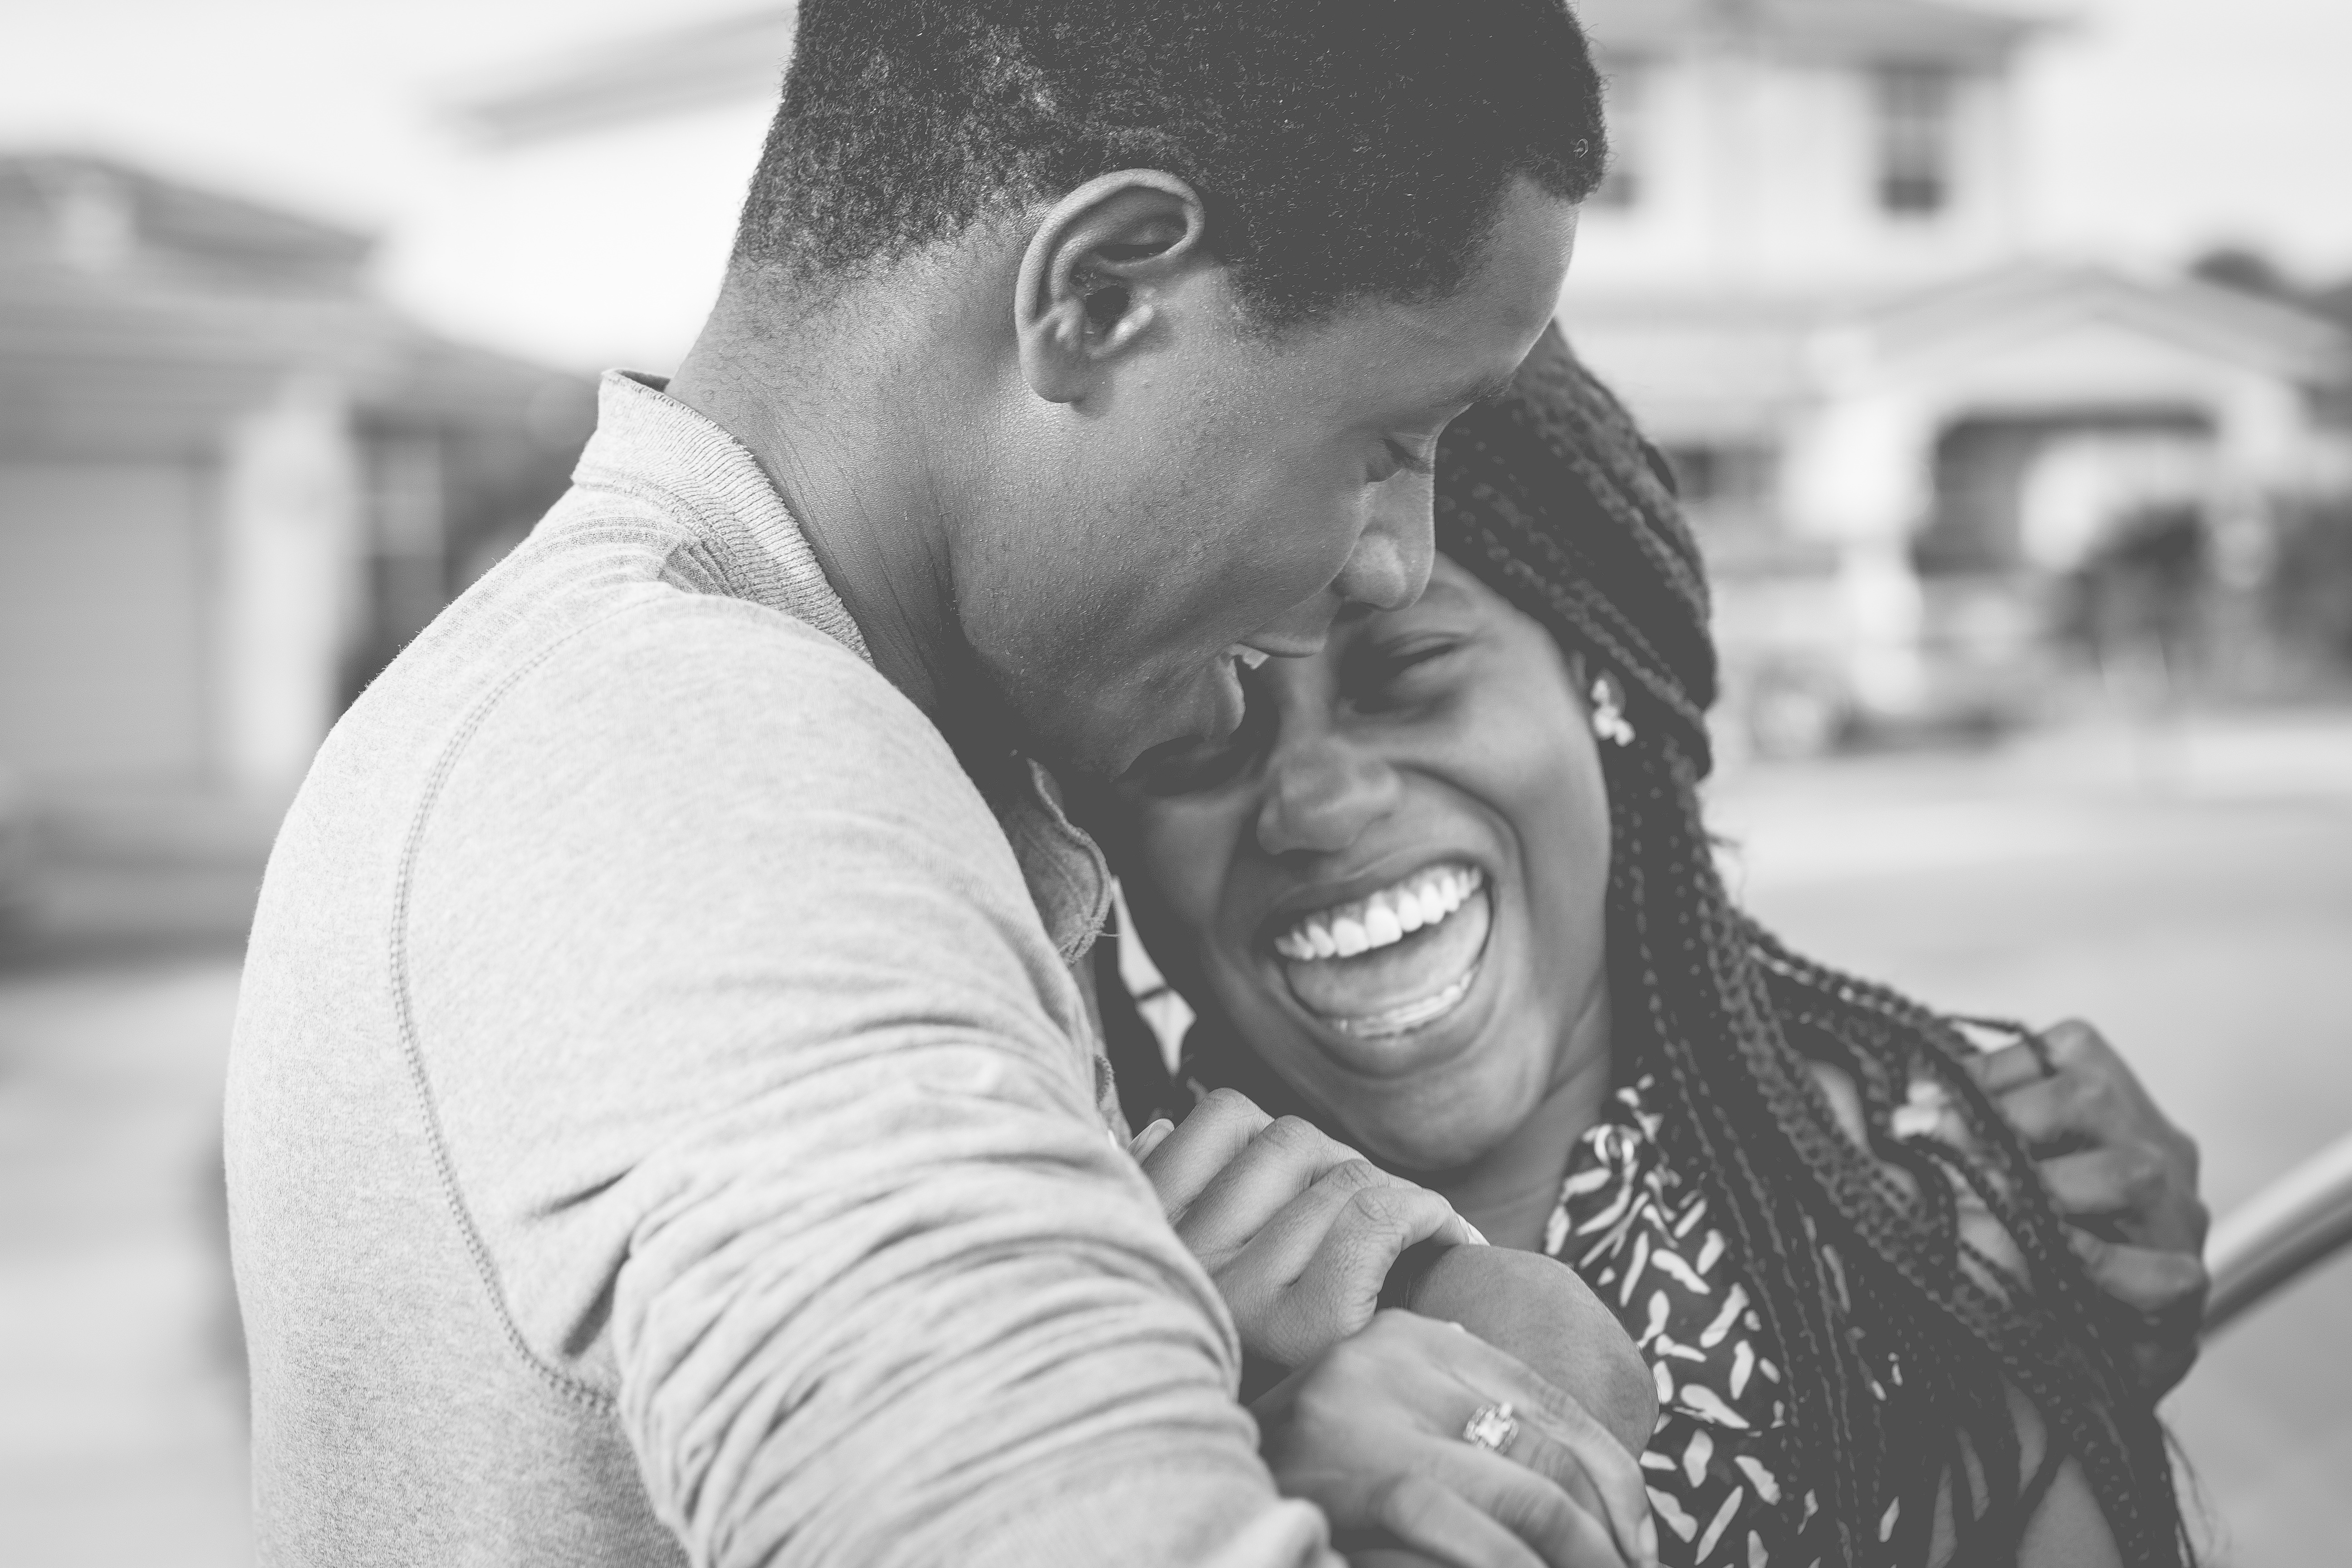 A young couple embracing and laughing